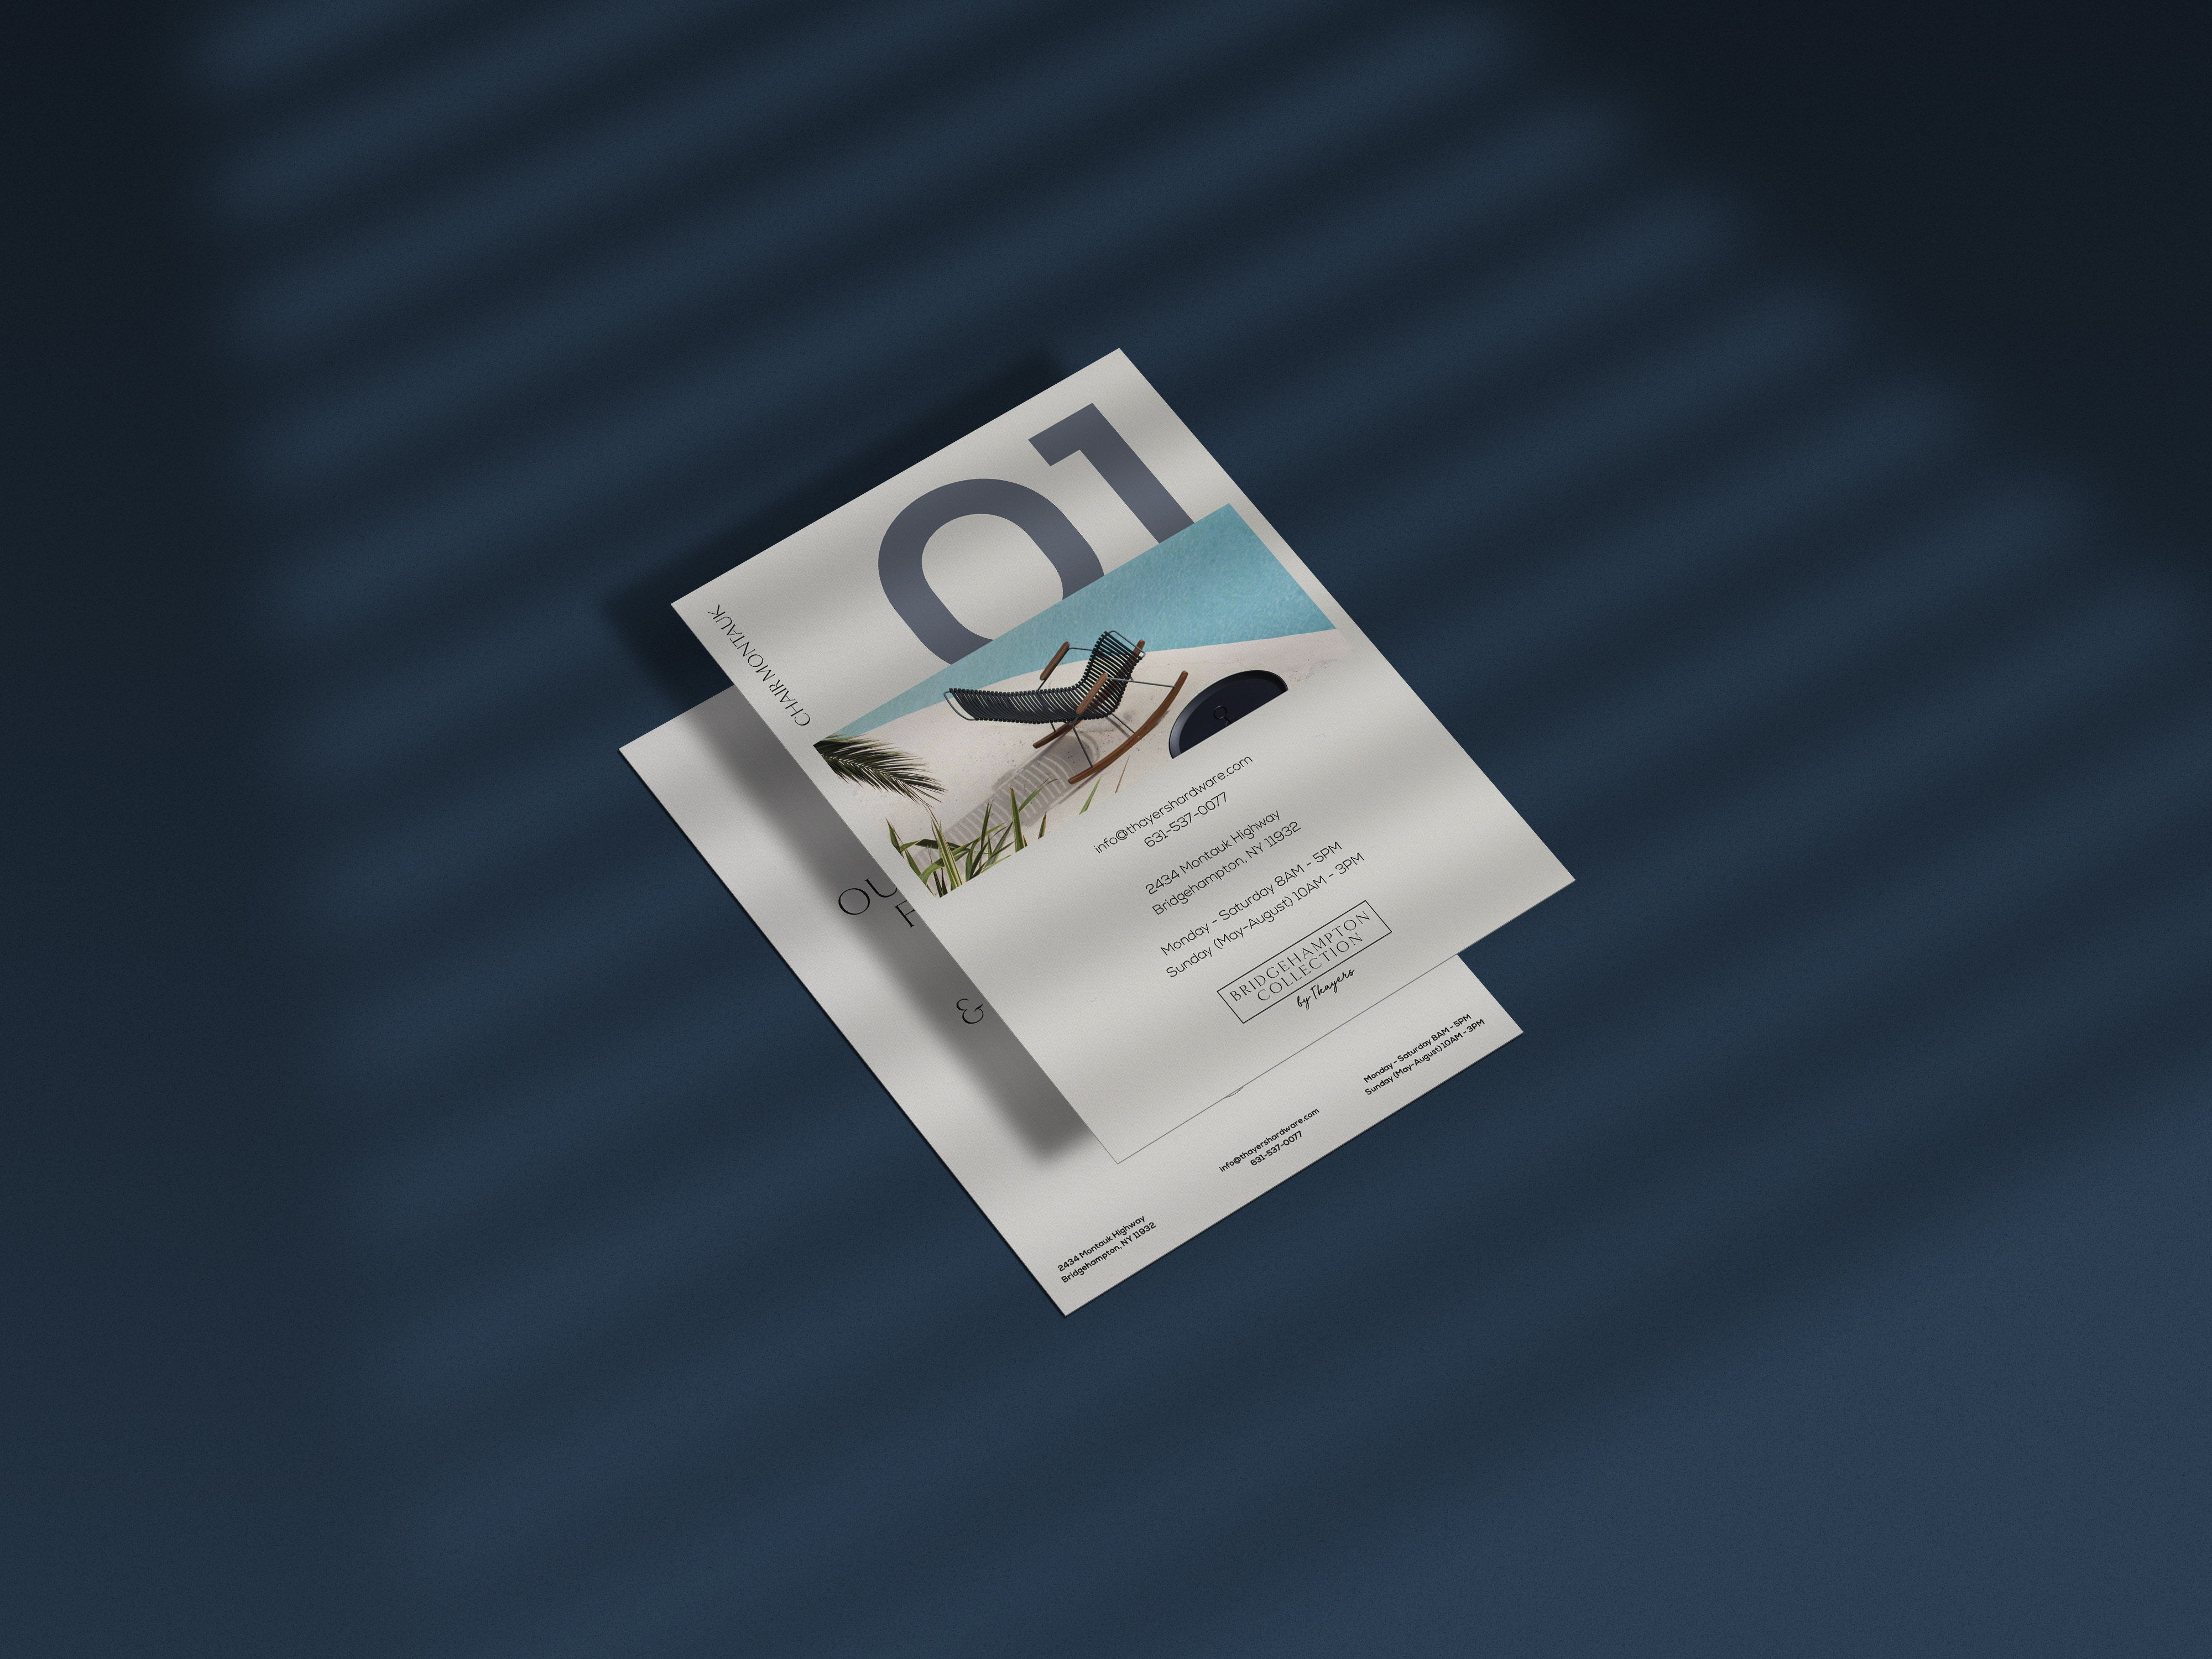 a4 flyer mockup with shadow overlay